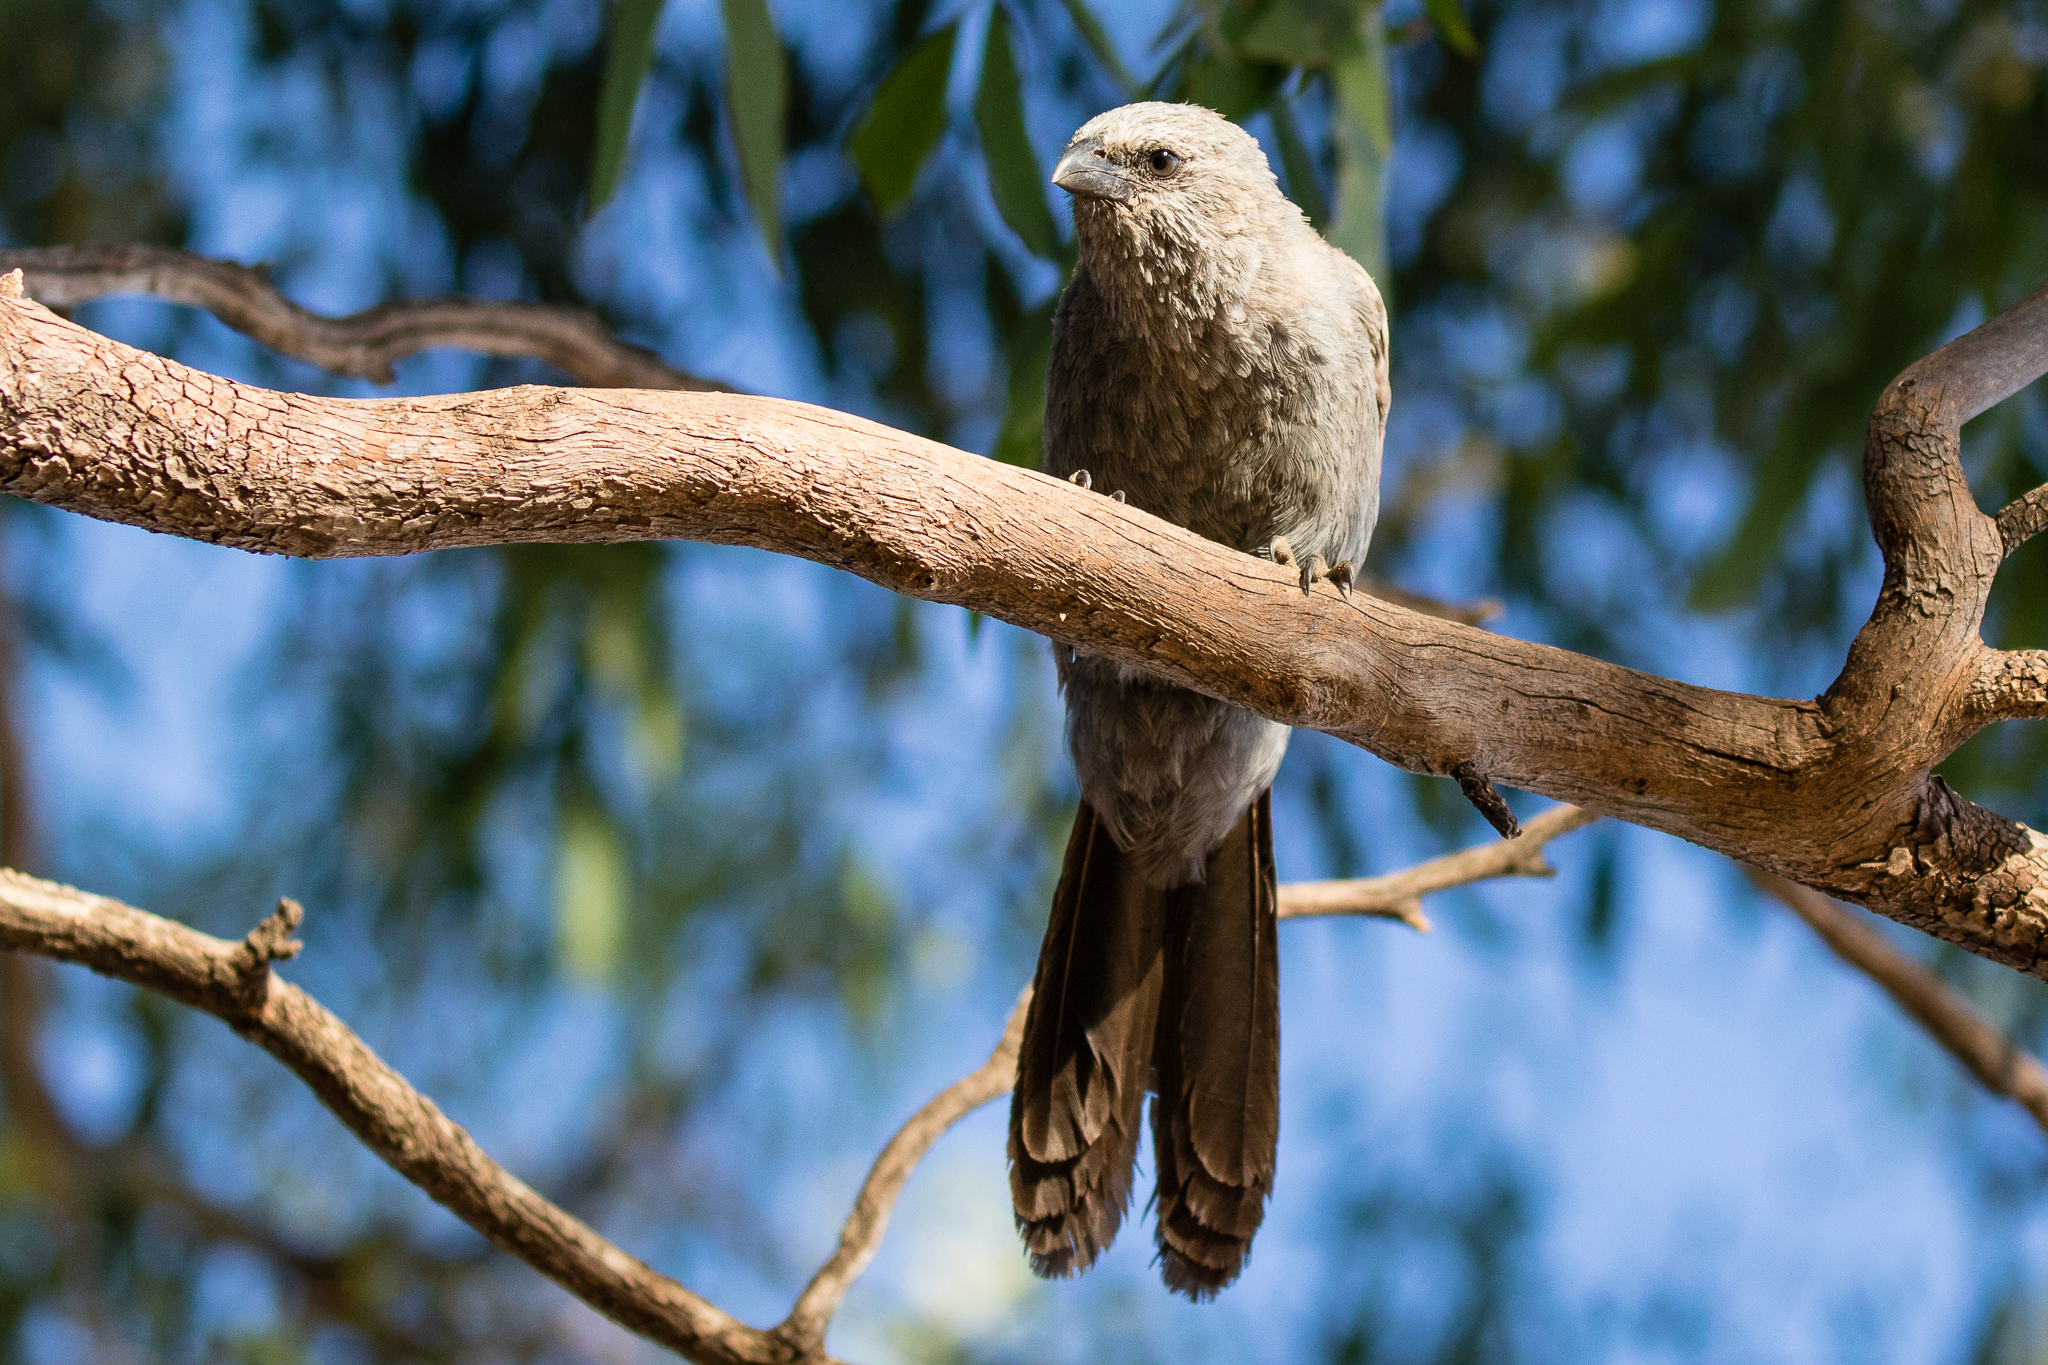 Apostlebirds make a bowl shaped nest out of mud. They are usually seen in co-operative family groups of up to 12 birds across farmlands, forests and woodland. They share building nests and raising their young.